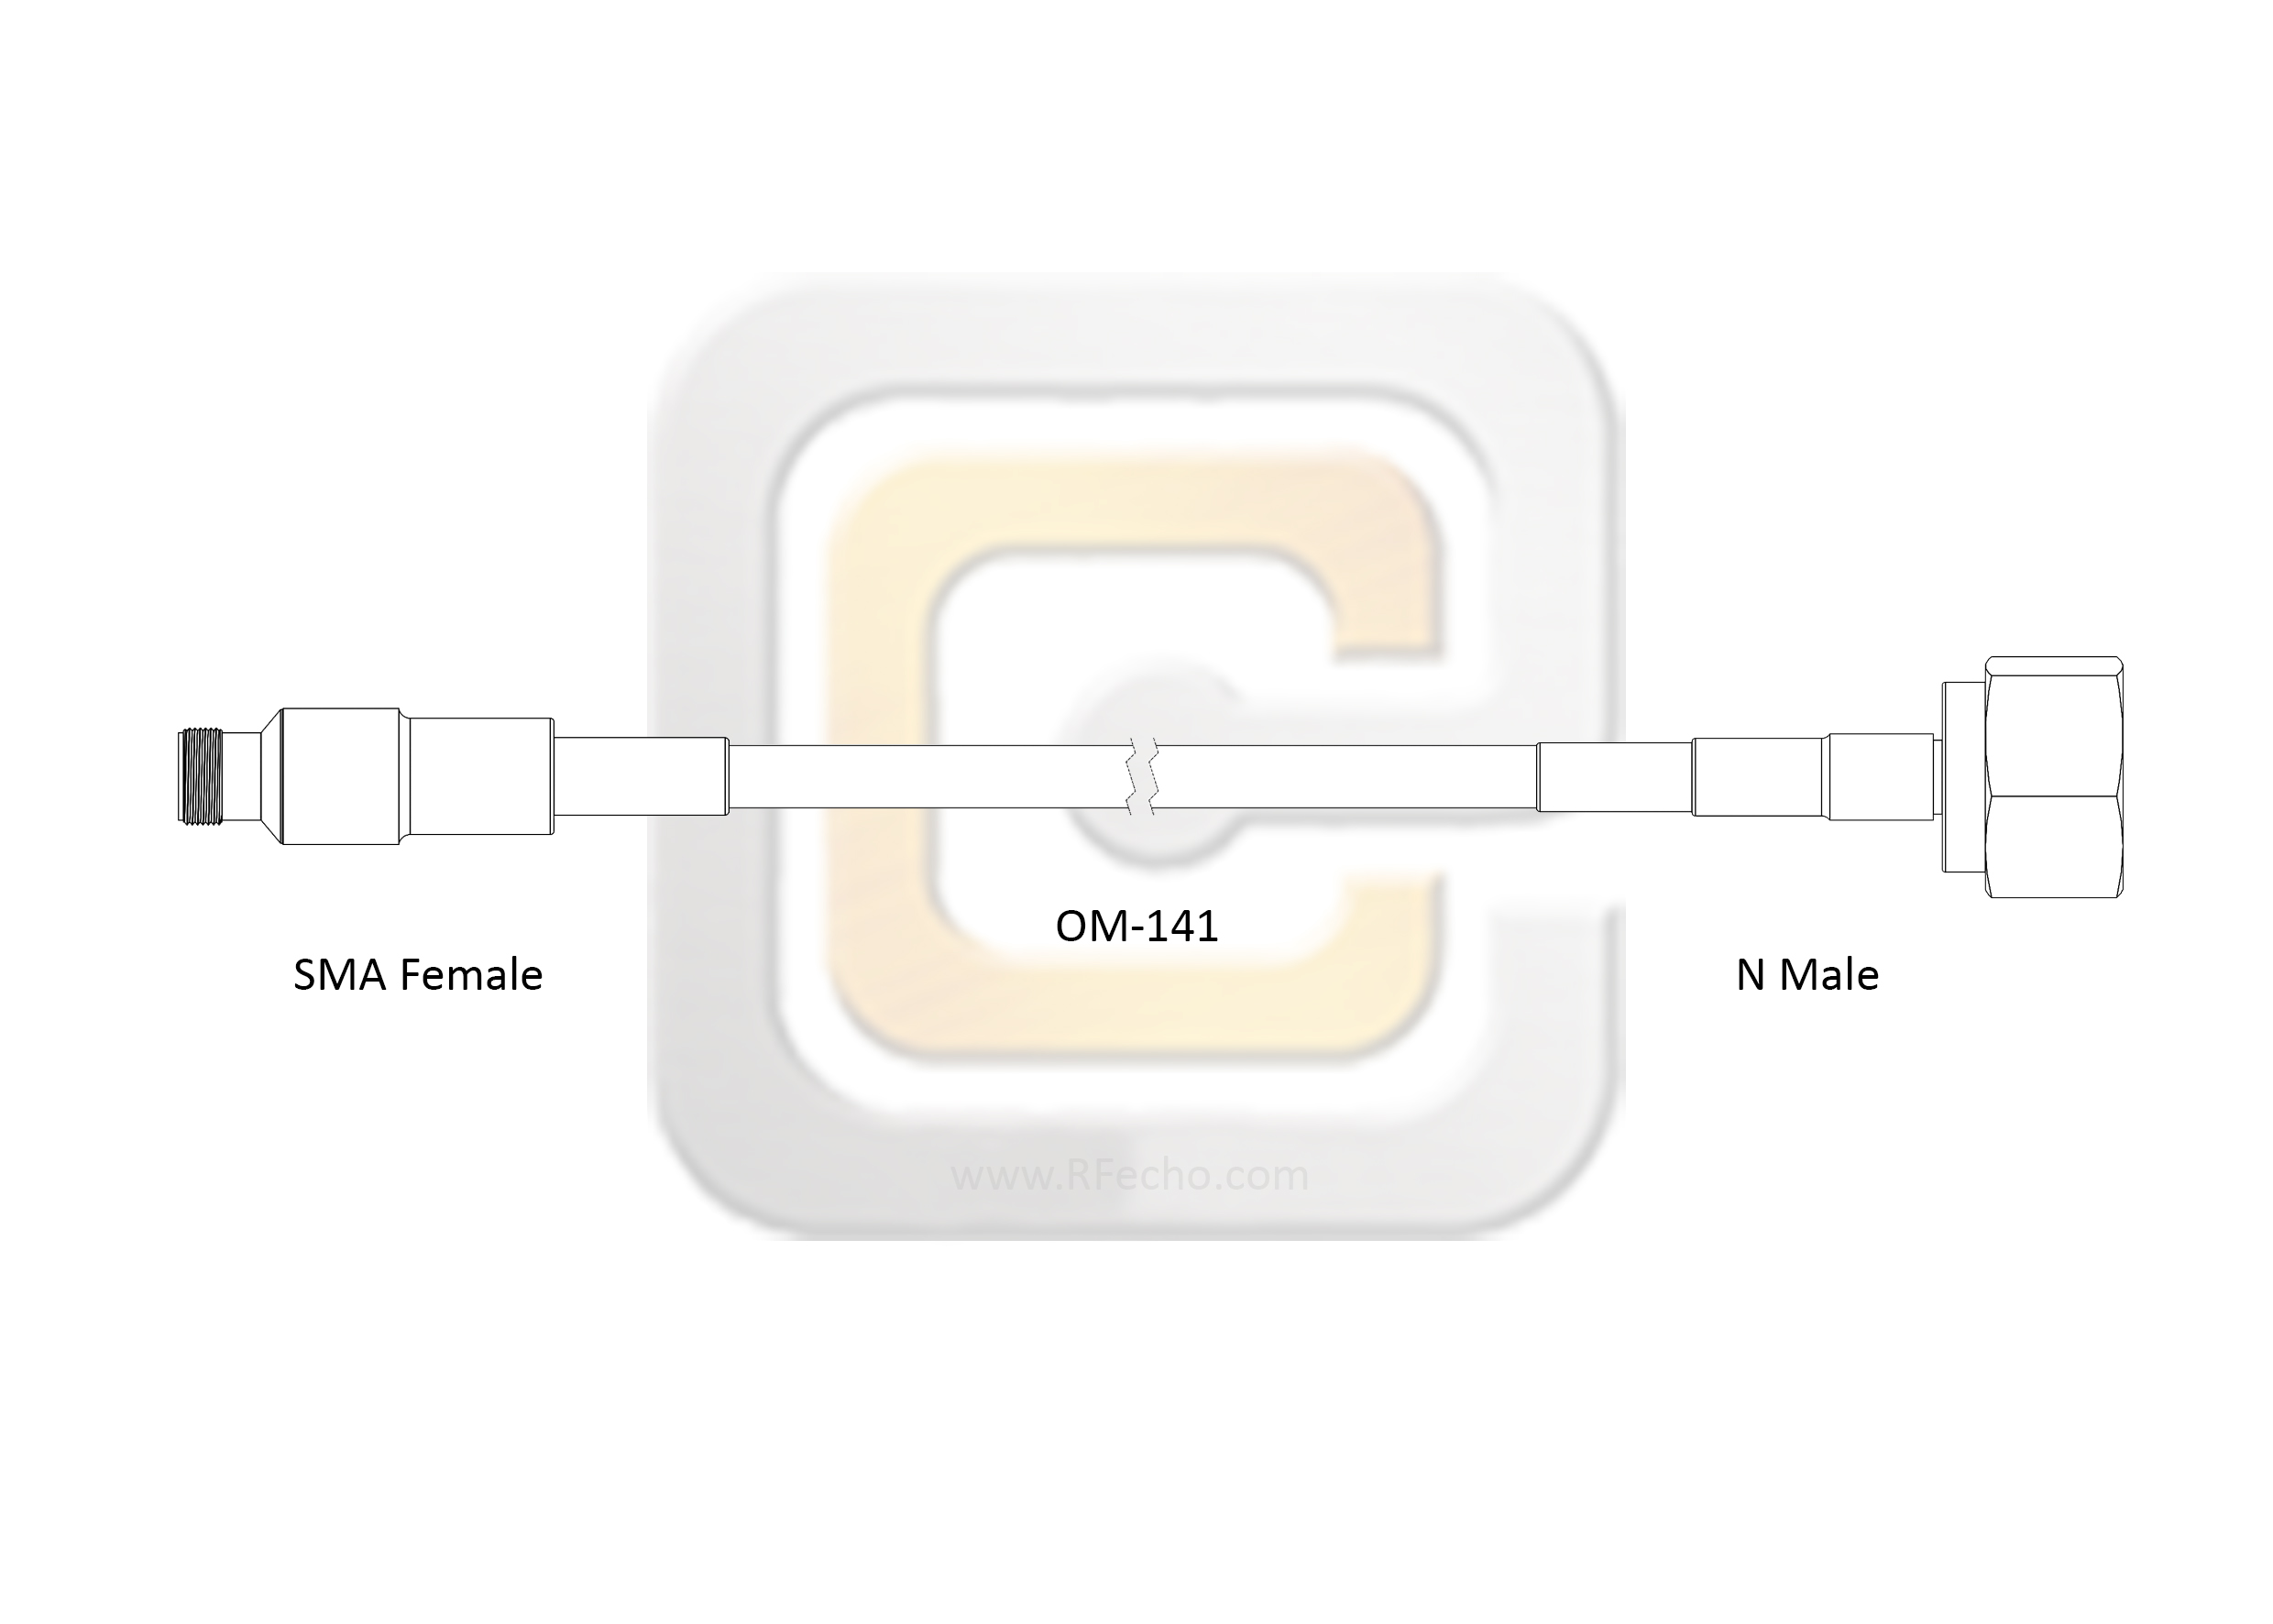 SMA Female to N Male, 18 GHz, Composite OM-141 Coax and RoHS